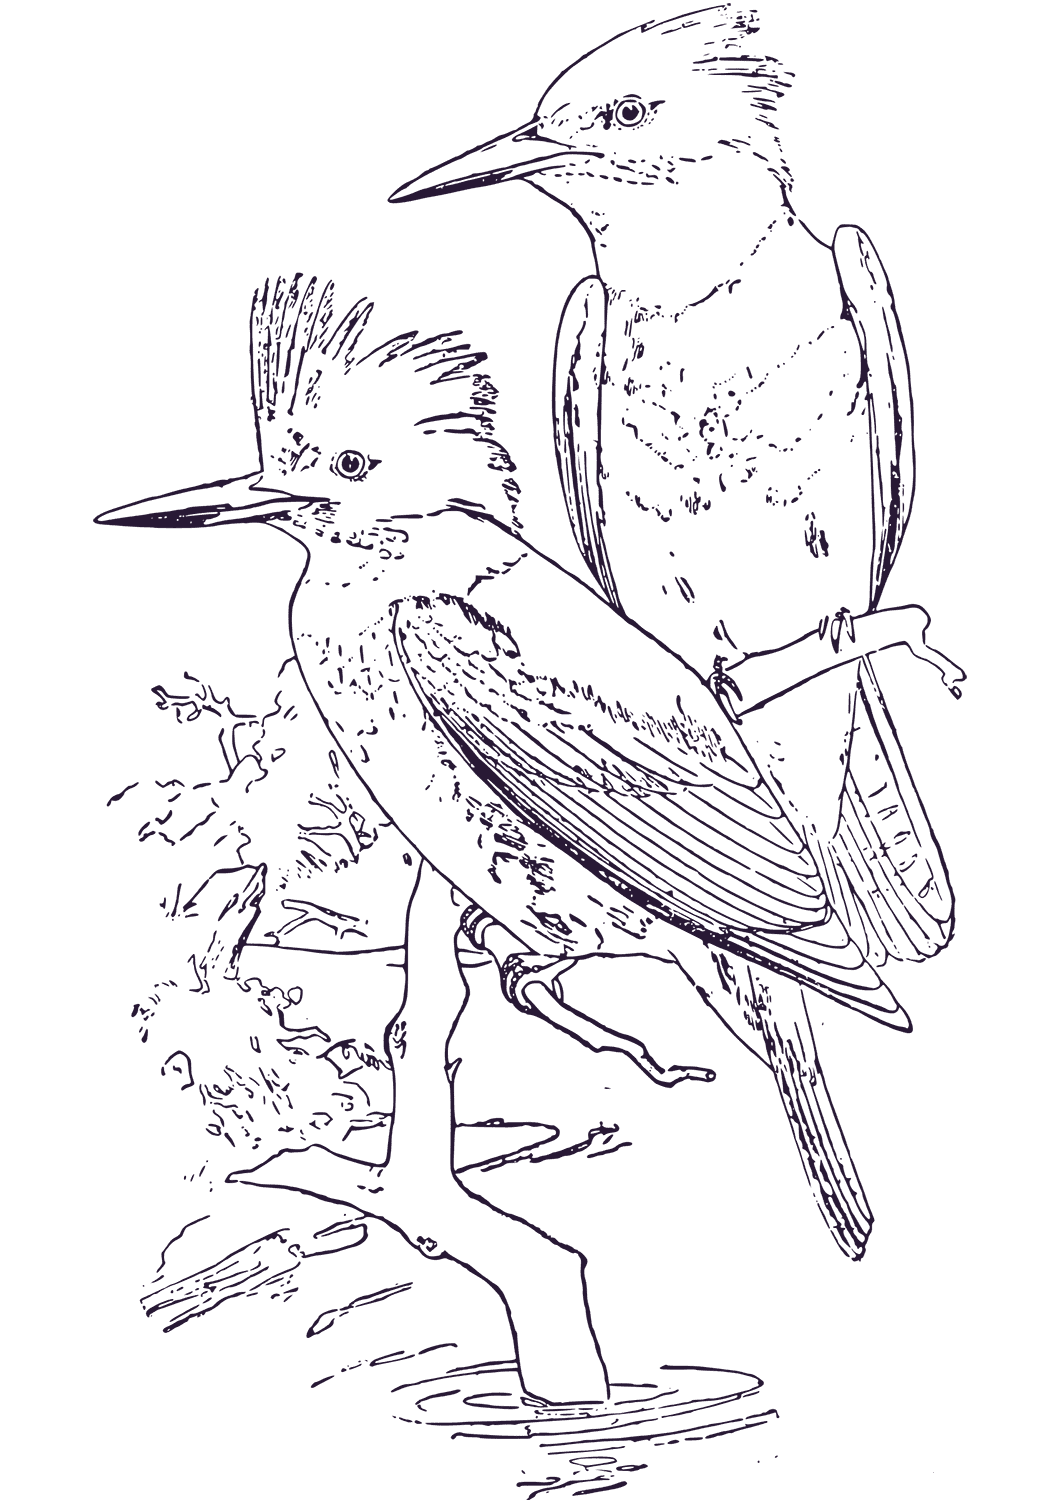 Belted King Fishers